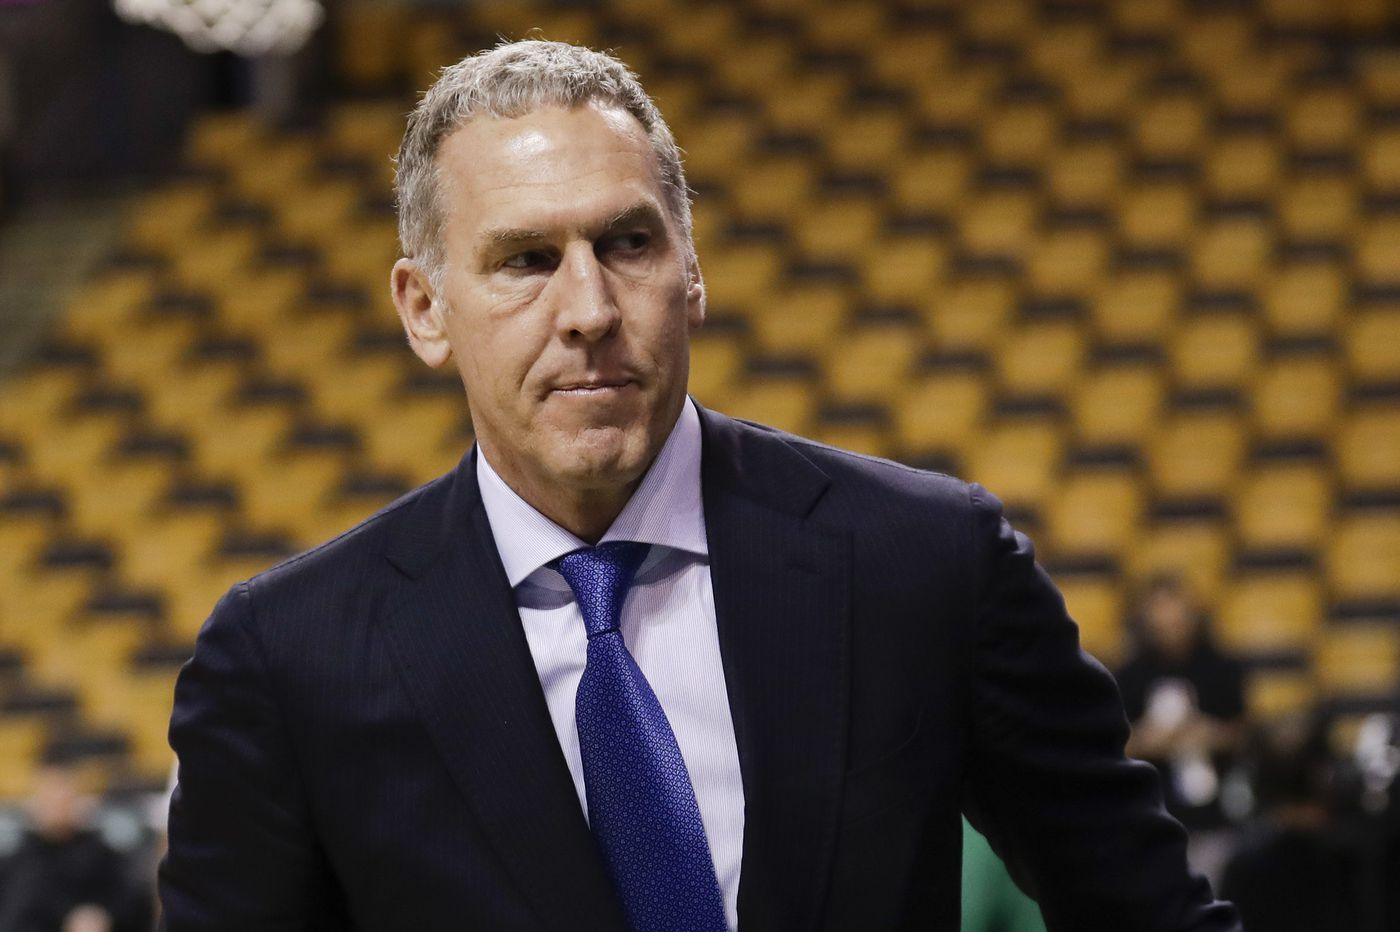 Sixers' Twitter scandal: How Bryan Colangelo's wife Barbara Bottini is involved